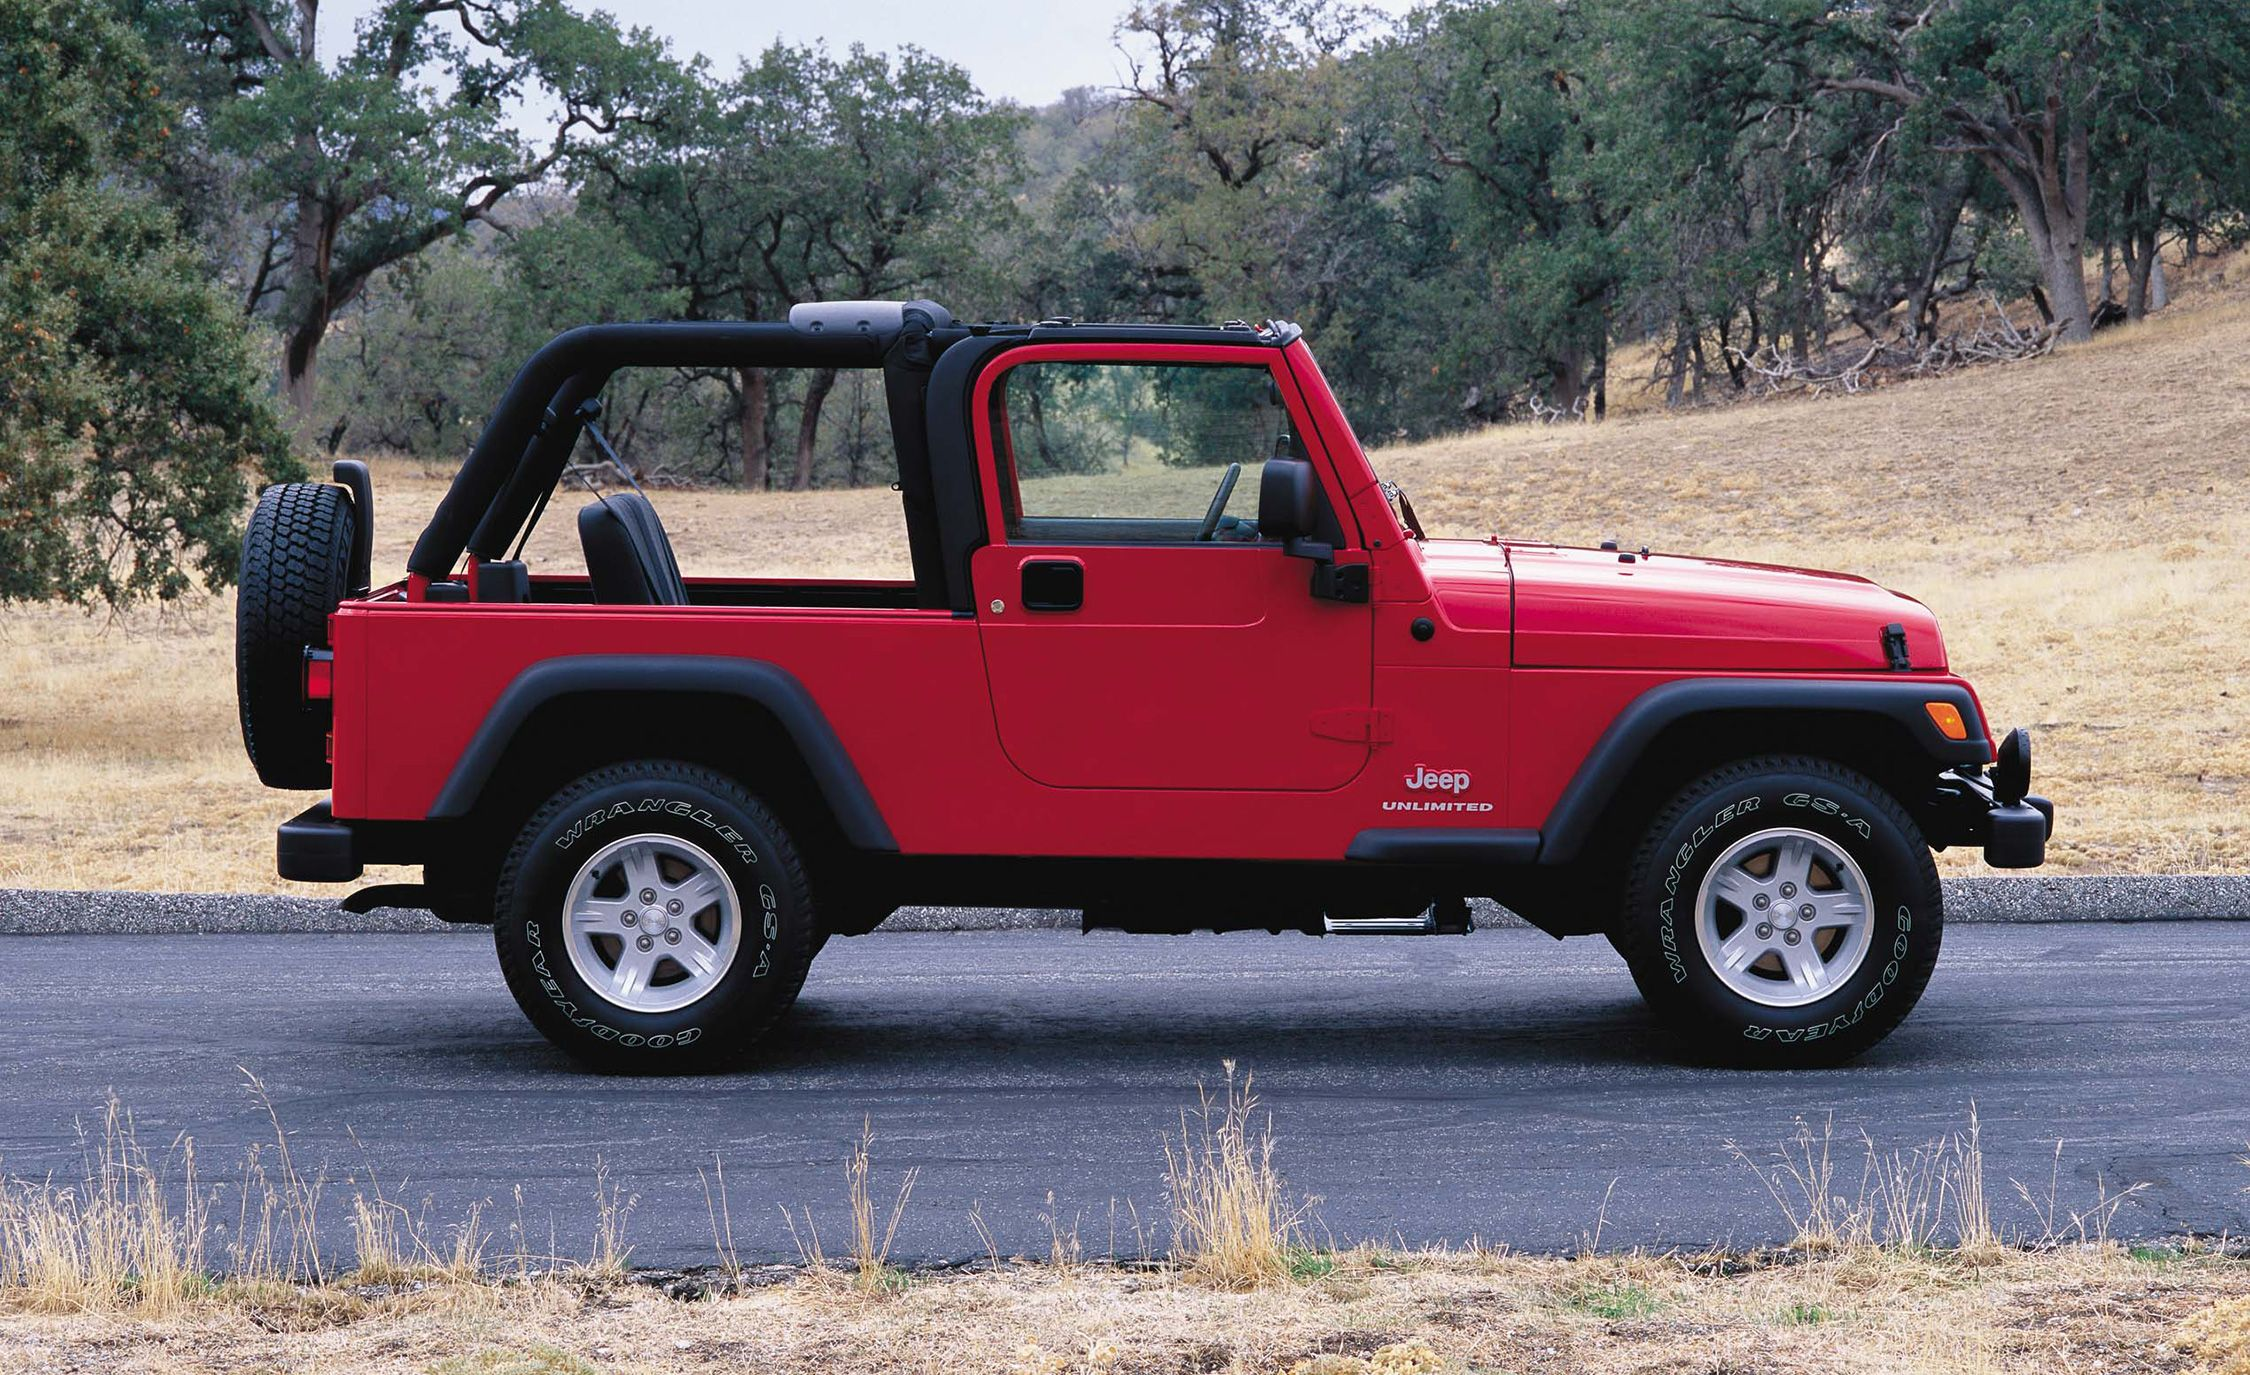 Visual History Of The Jeep Wrangler From 1986 To Present